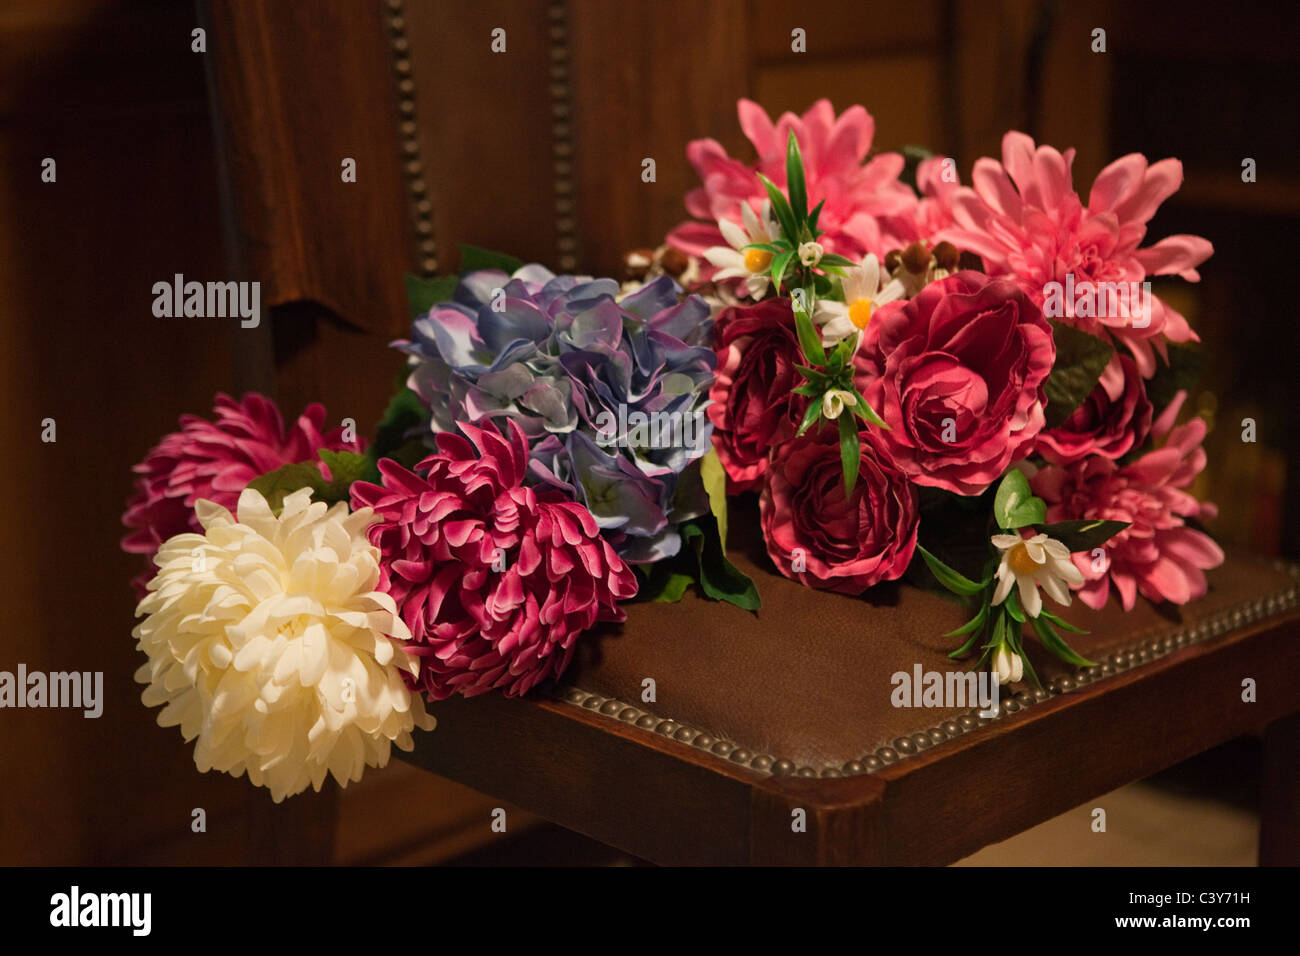 Leather Chair Flowers Stock Photos Leather Chair Flowers Stock